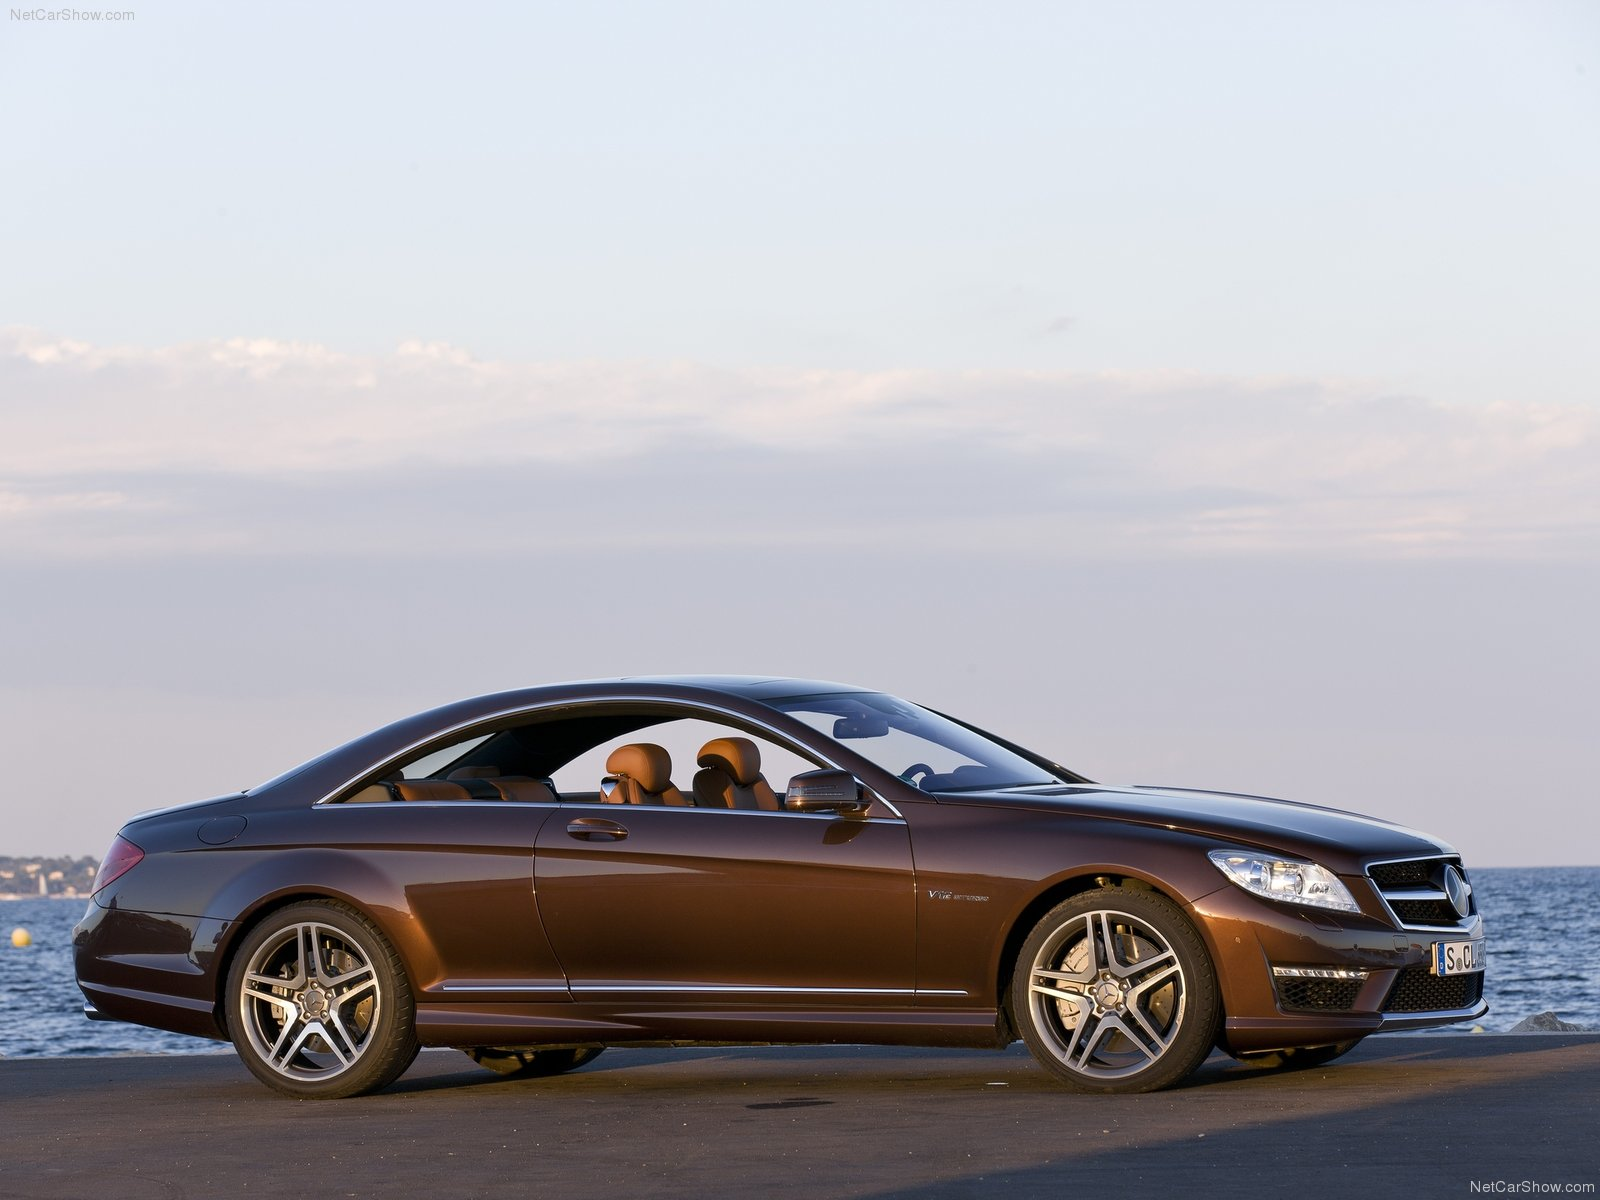 Mercedes benz cl65 amg photos photo gallery page 2 for Mercedes benz cl65